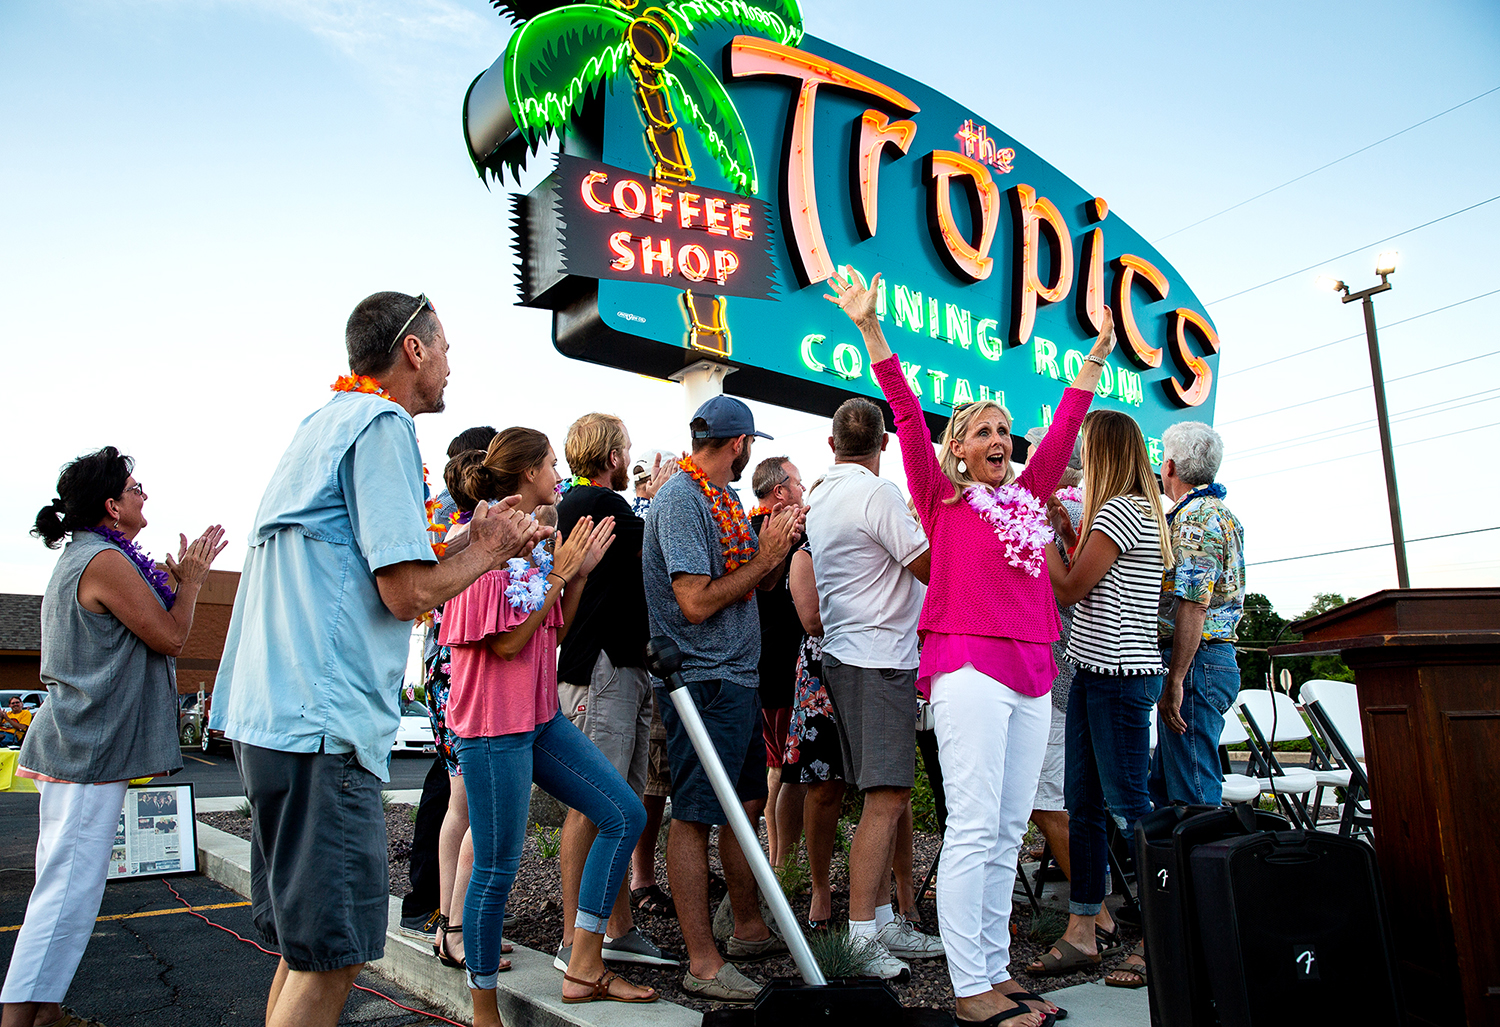 Tami Goodrich cheers when the sign from her parent's former restaurant, The Tropics in Lincoln, lights up for the first time in 15 years during a ceremonial relighting  Sunday, June 24, 2018. Lew and Bev Johnson ran the restaurant on Route 66 from 1953 to 1997 when they sold it. It closed for good in 2003. Ace Sign Co. in Springfield did the $70,000 restoration, which included replacing the original electrical system and some rusted panels and repainting the sign. Goodrich was joined by her siblings and nieces and nephews to turn the switch. [Rich Saal/The State Journal-Register]